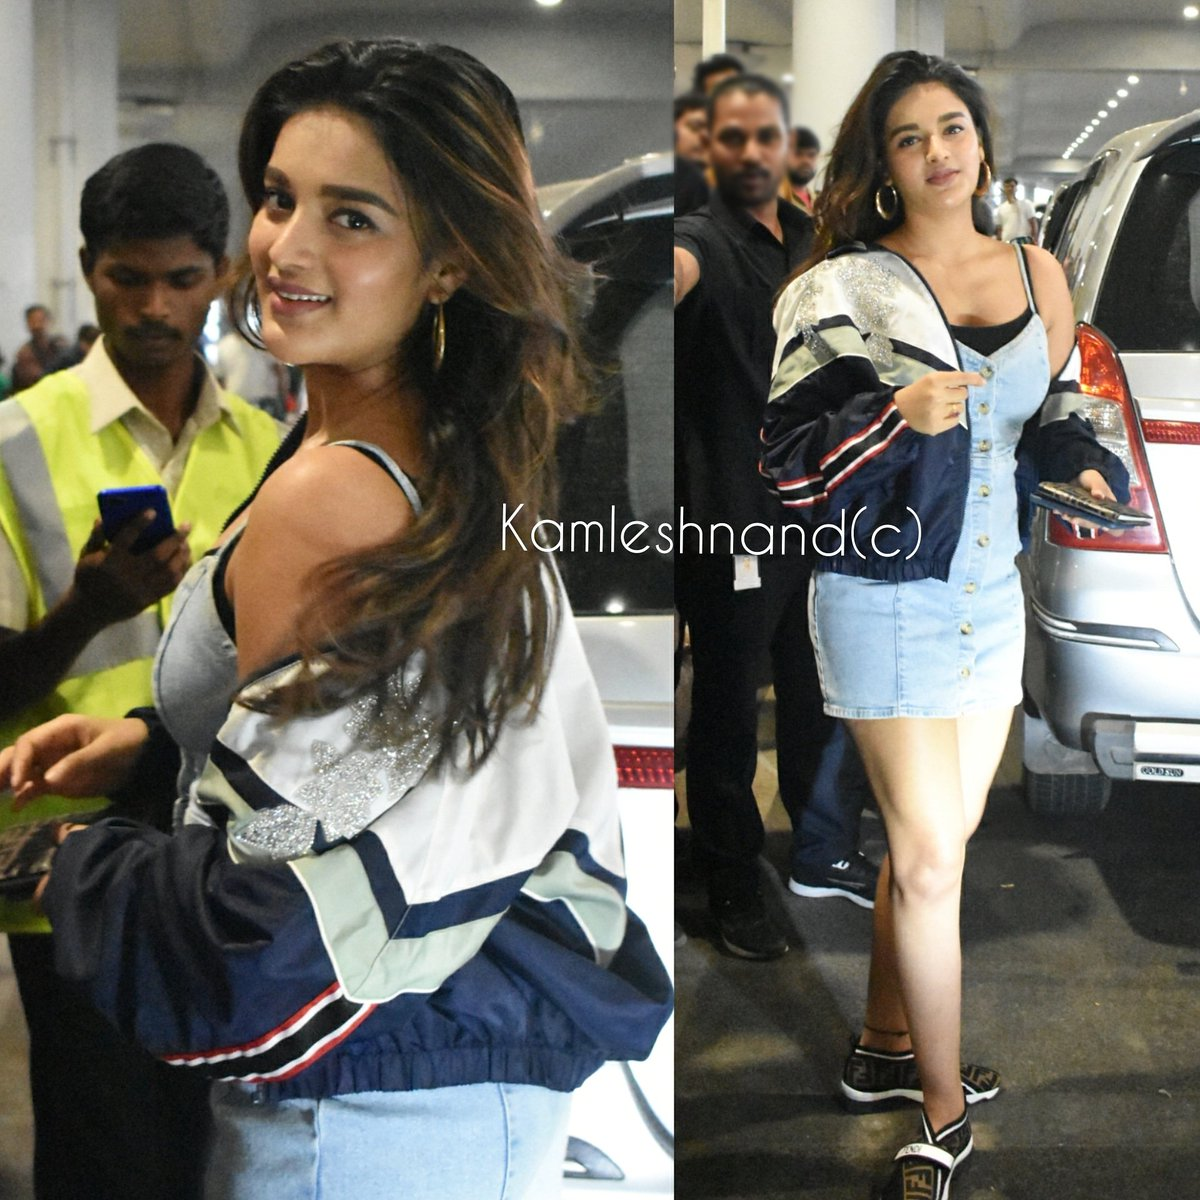 Hotiee #NidhhiAgerwal papped @ hyd @AgerwalNidhhi @kamlesh_nand #tollywood #southcelebs pic.twitter.com/eAOBNHDTTq